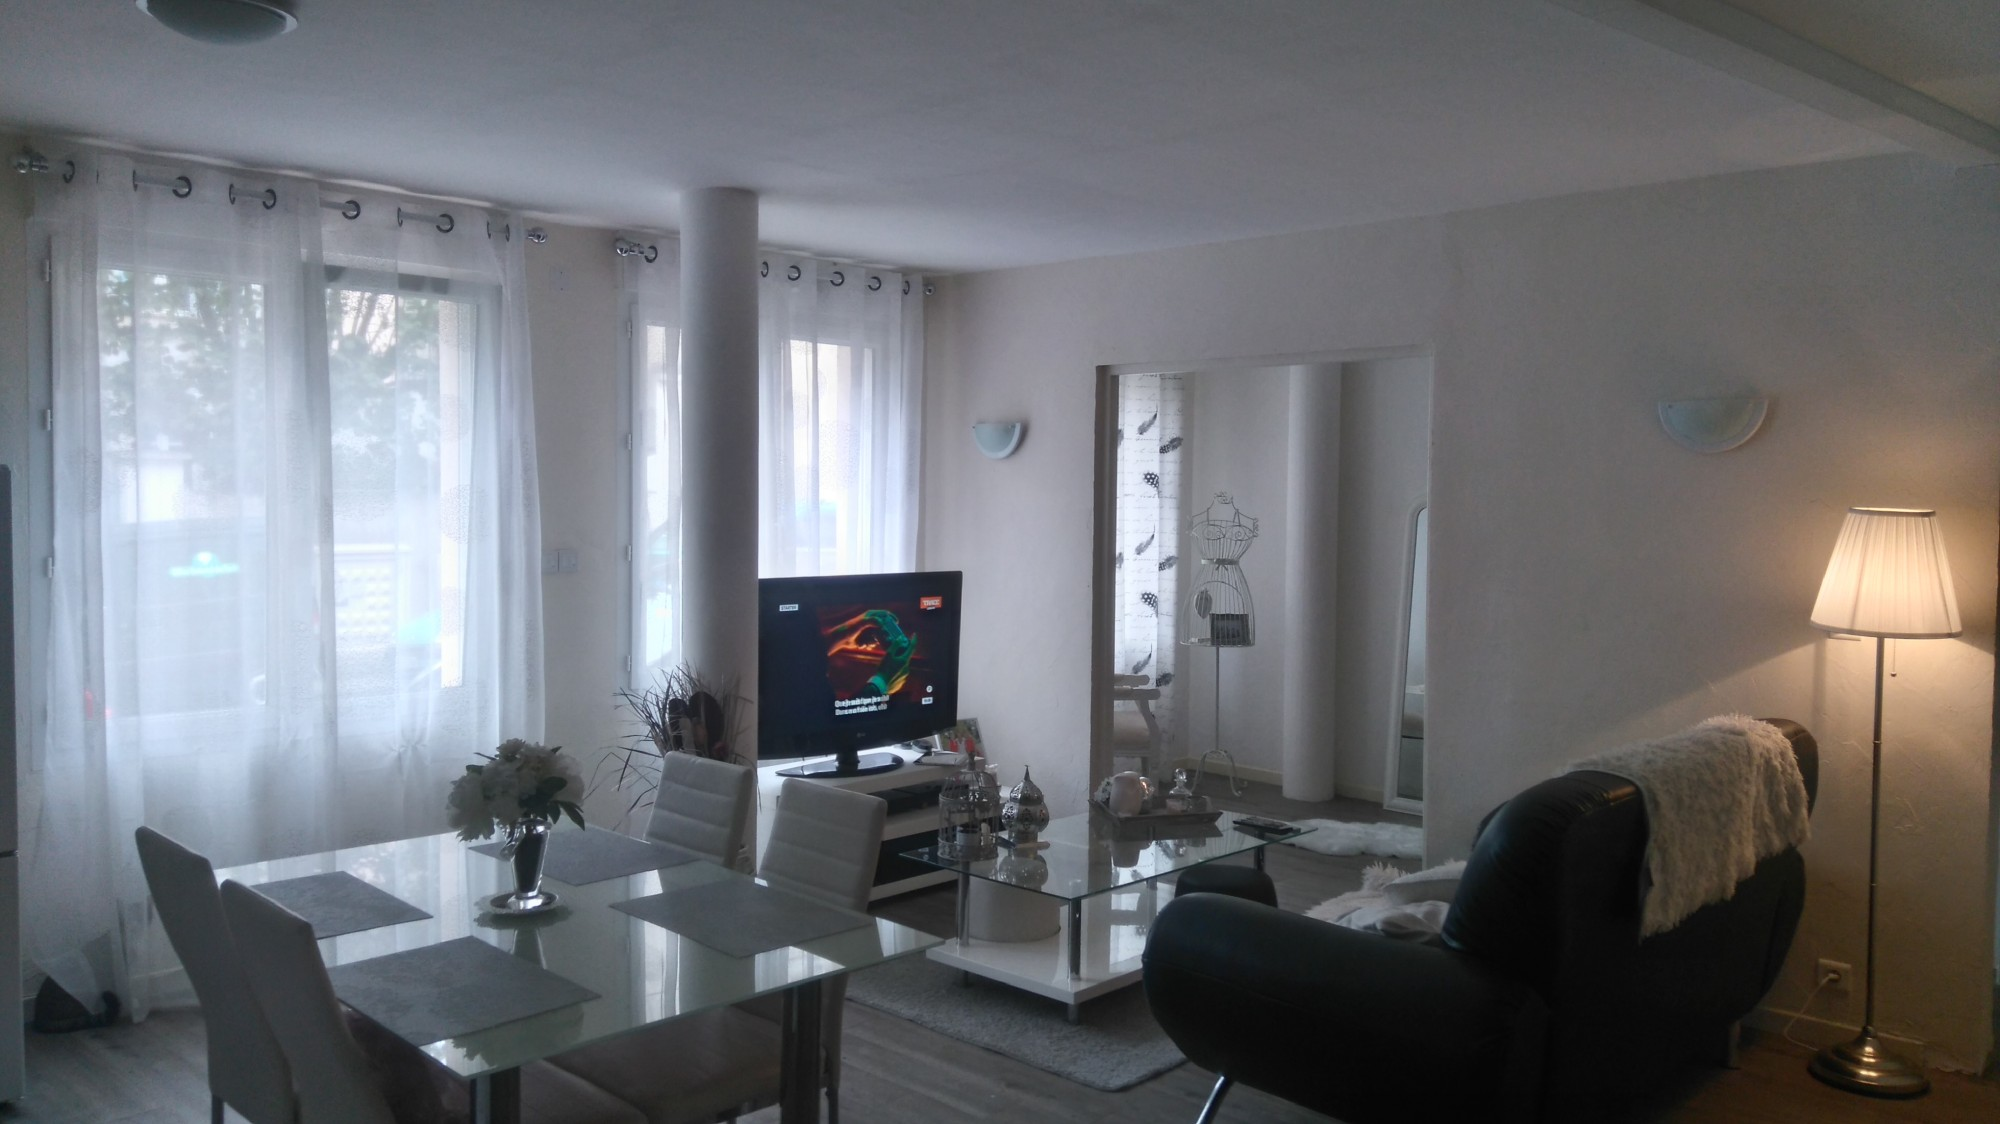 LOCATION VALENCE APPARTEMENT